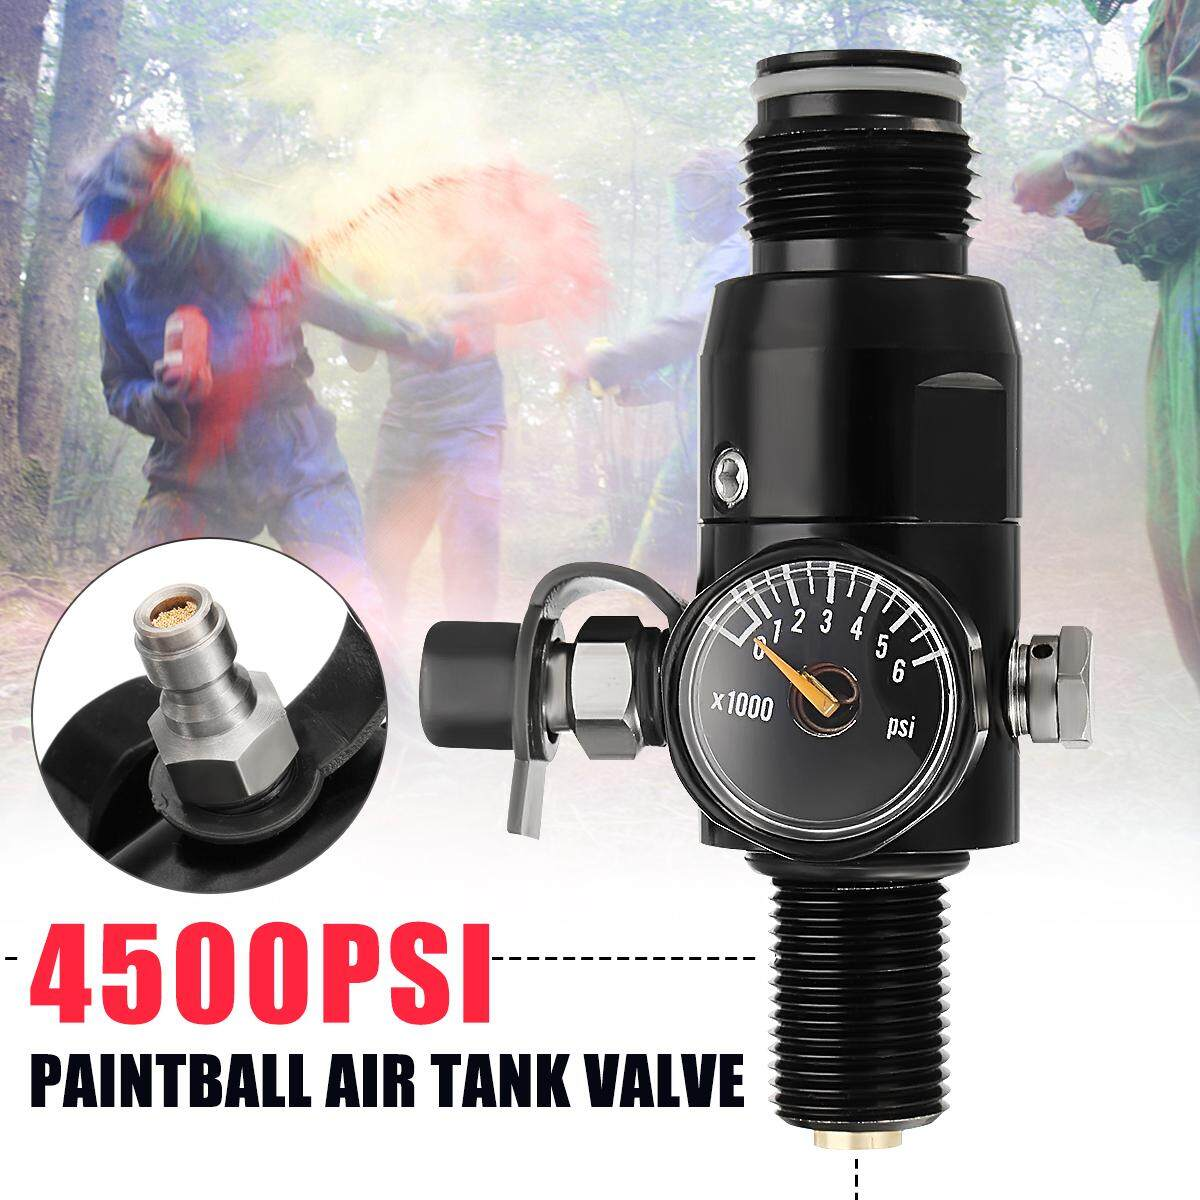 5/8-18UNF Thread Paintball Valve Regulator 4500psi HPA Air Tank Output 1800psi